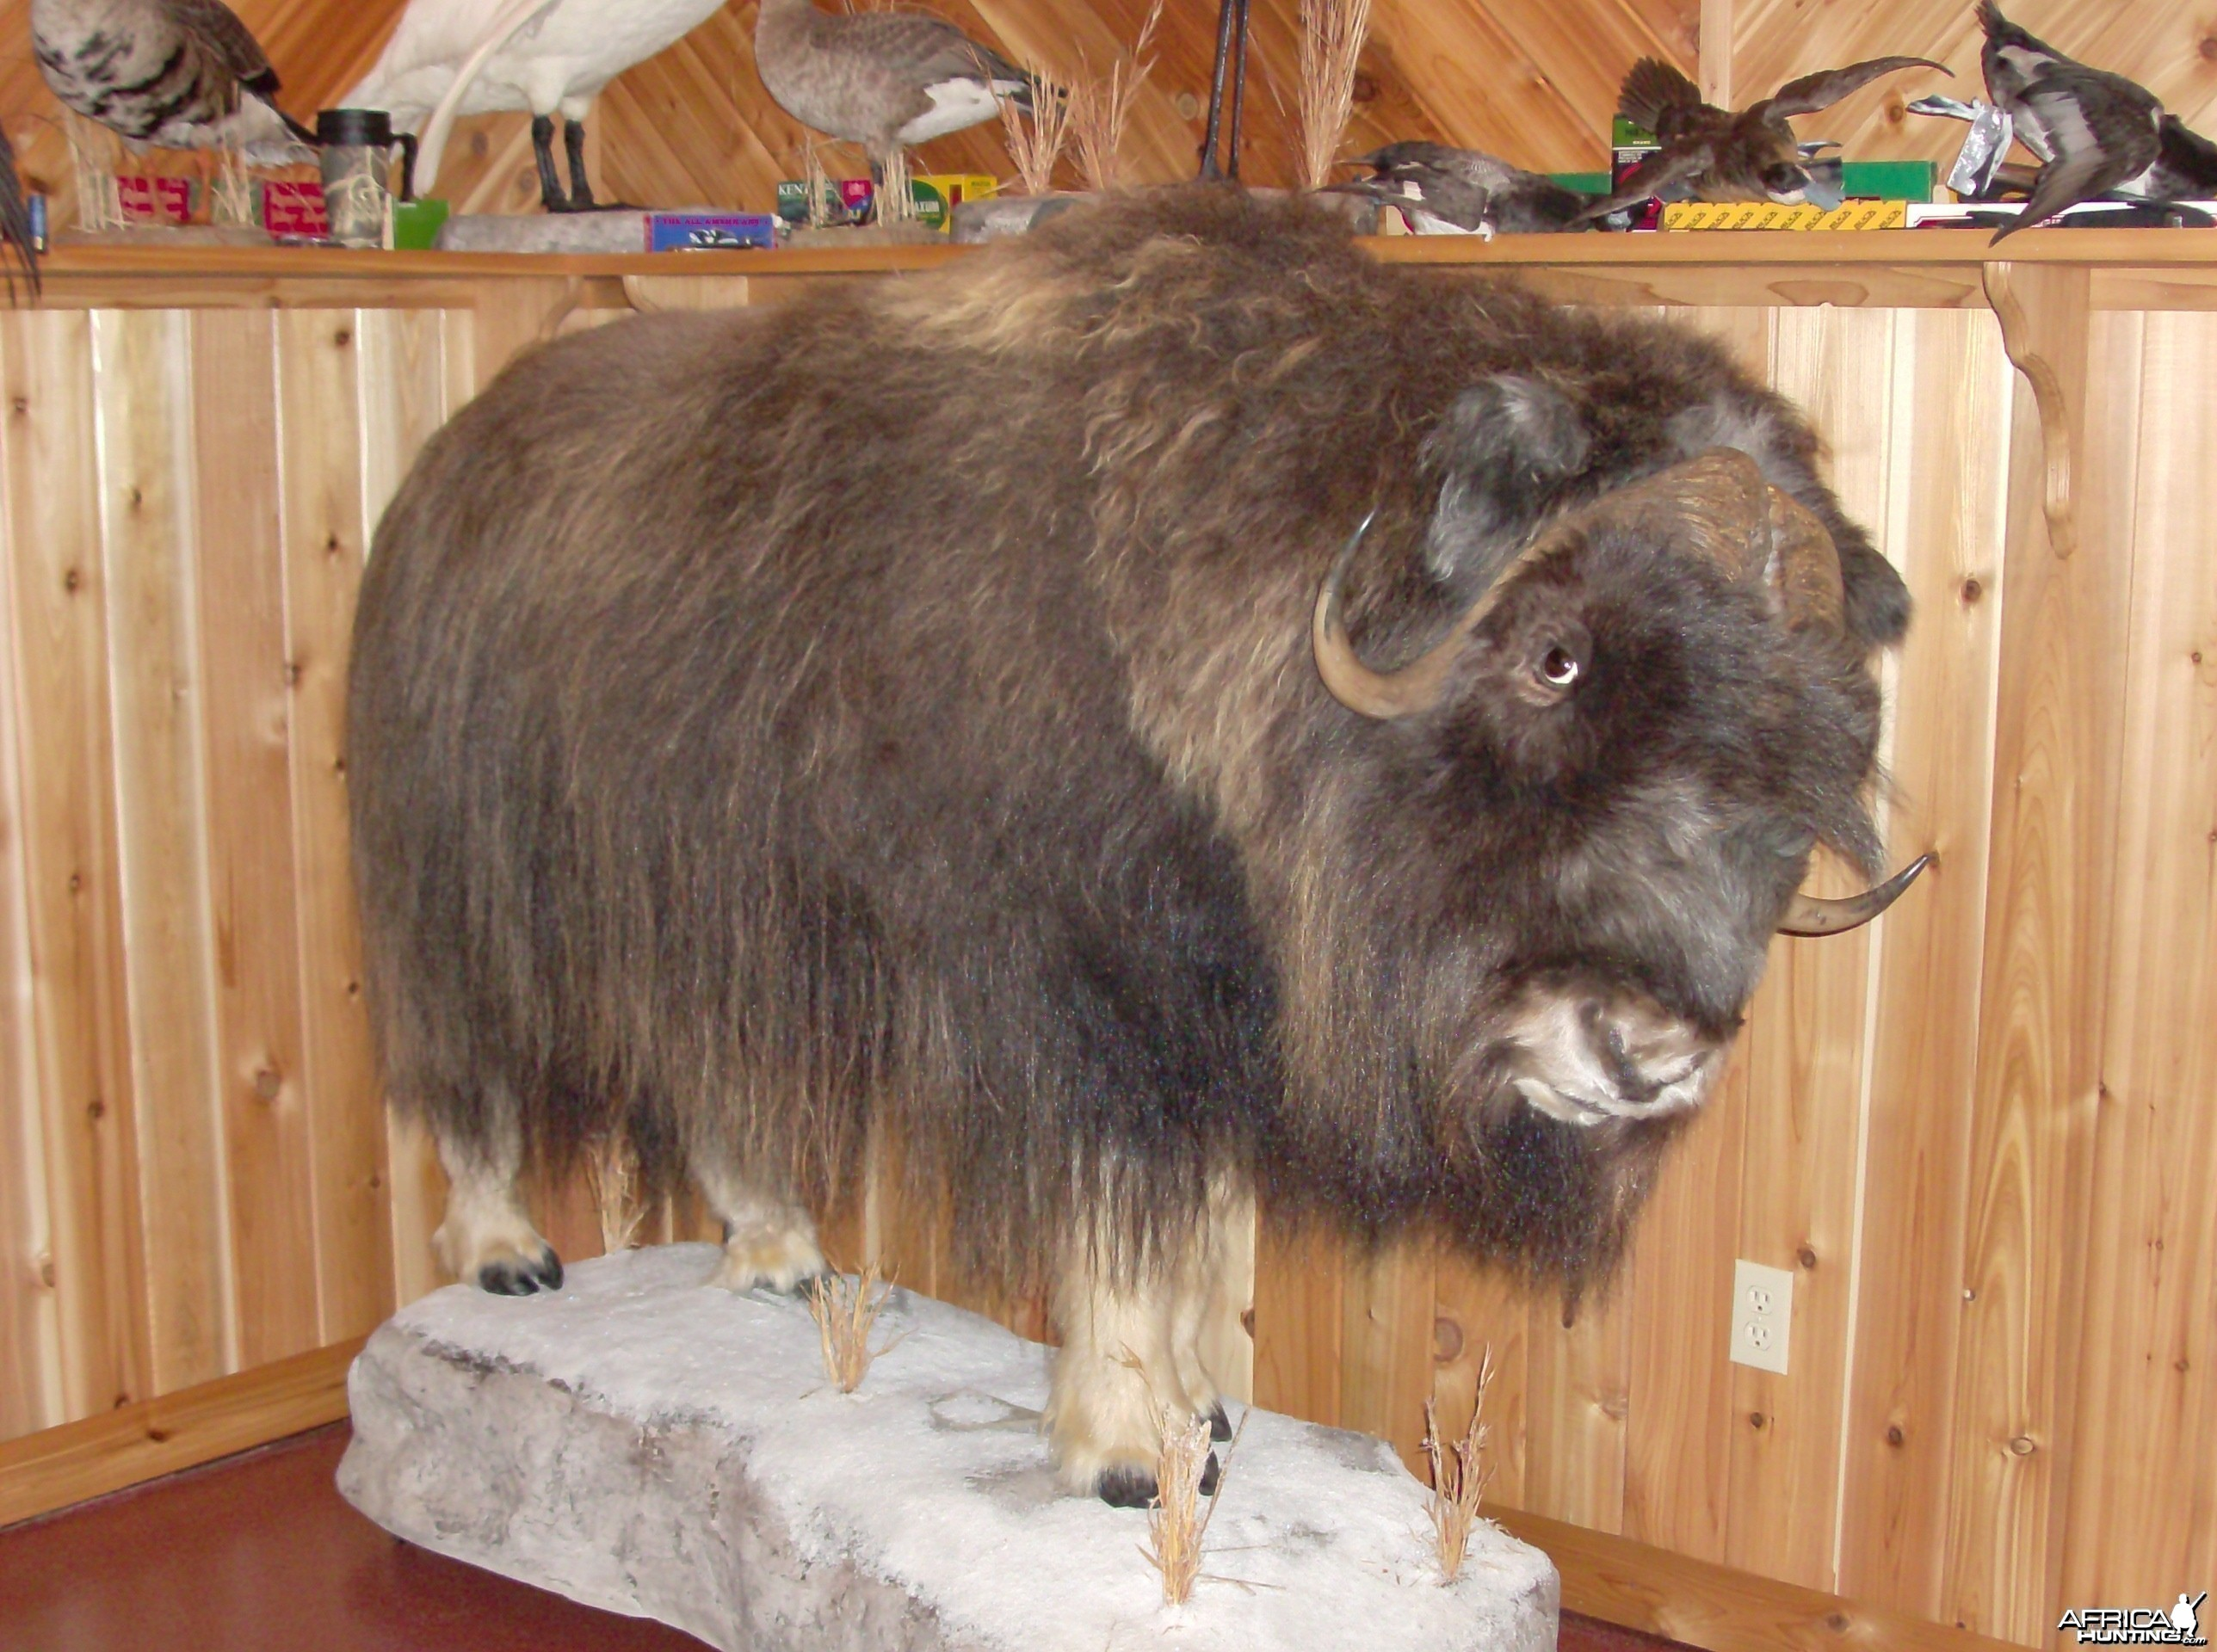 Definitely not African Musk Ox